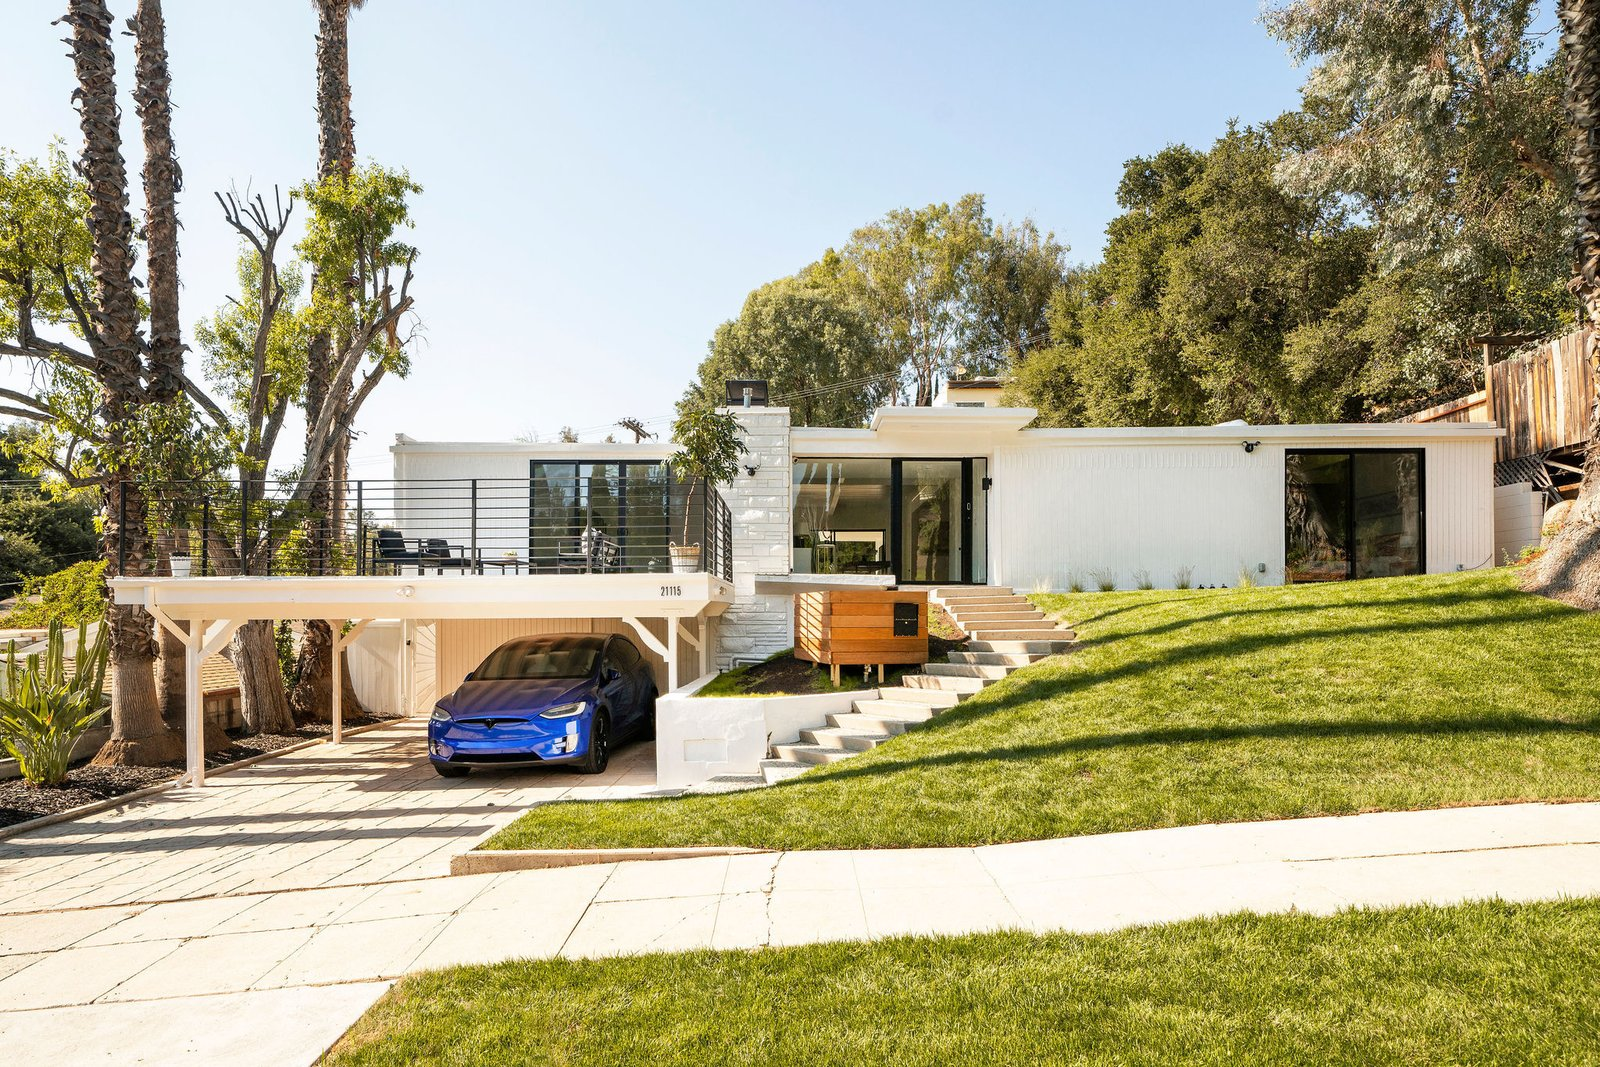 Photo 1 of 25 in Before & After: Two Brothers List Their Swanky Midcentury Bachelor Pad for $1.6M